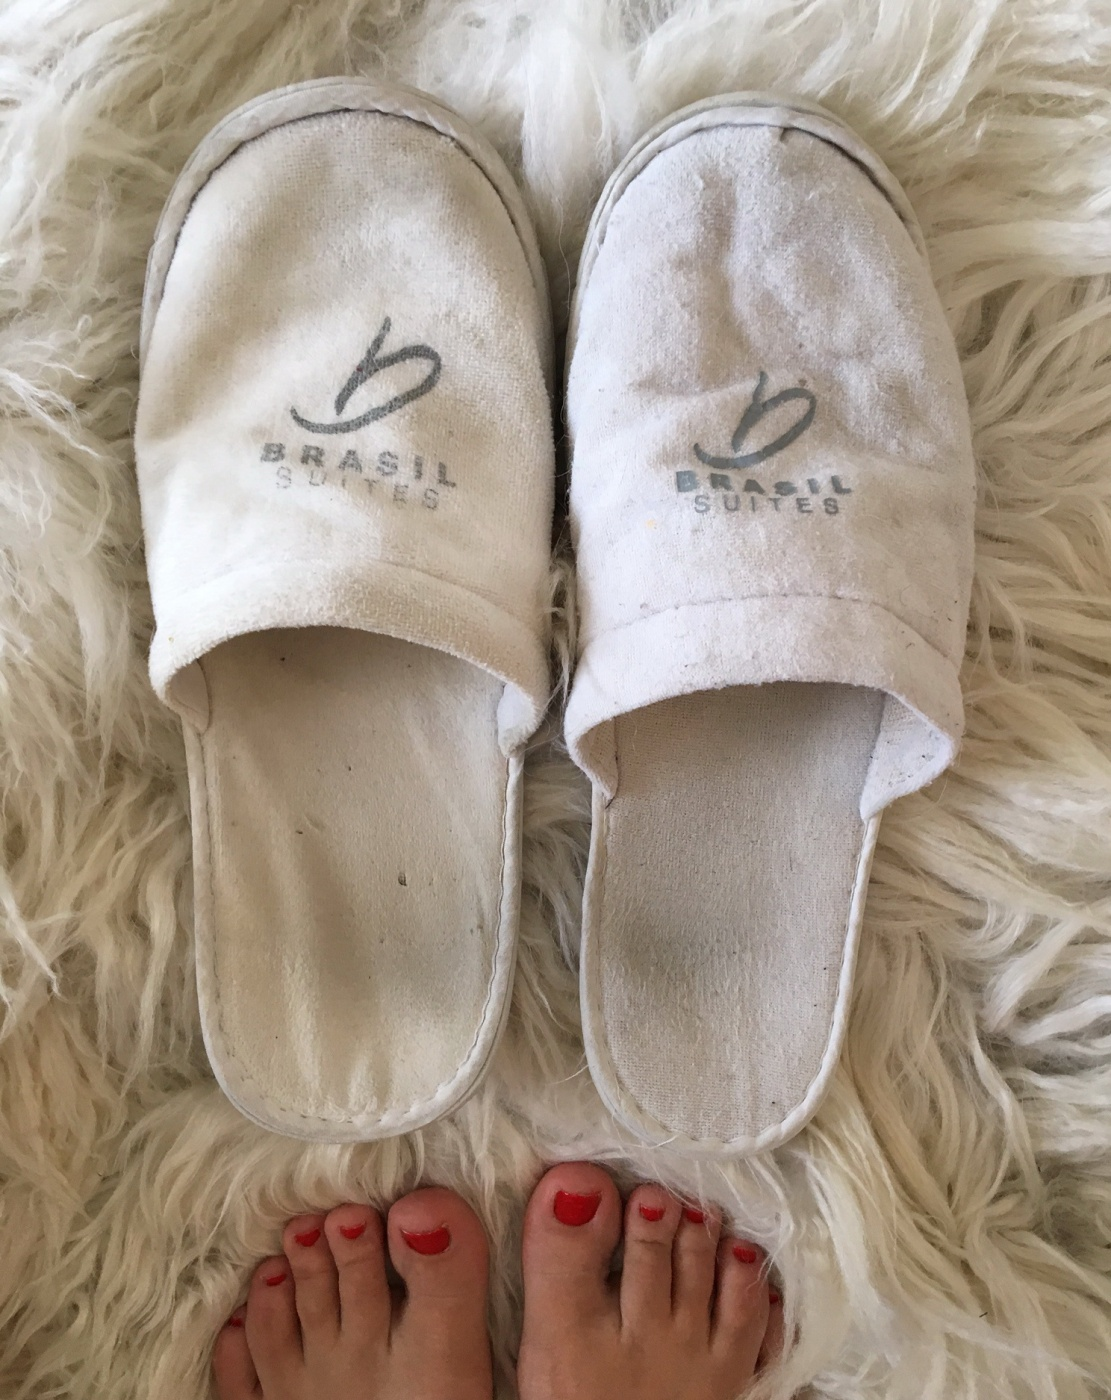 My well worn slippers - 2